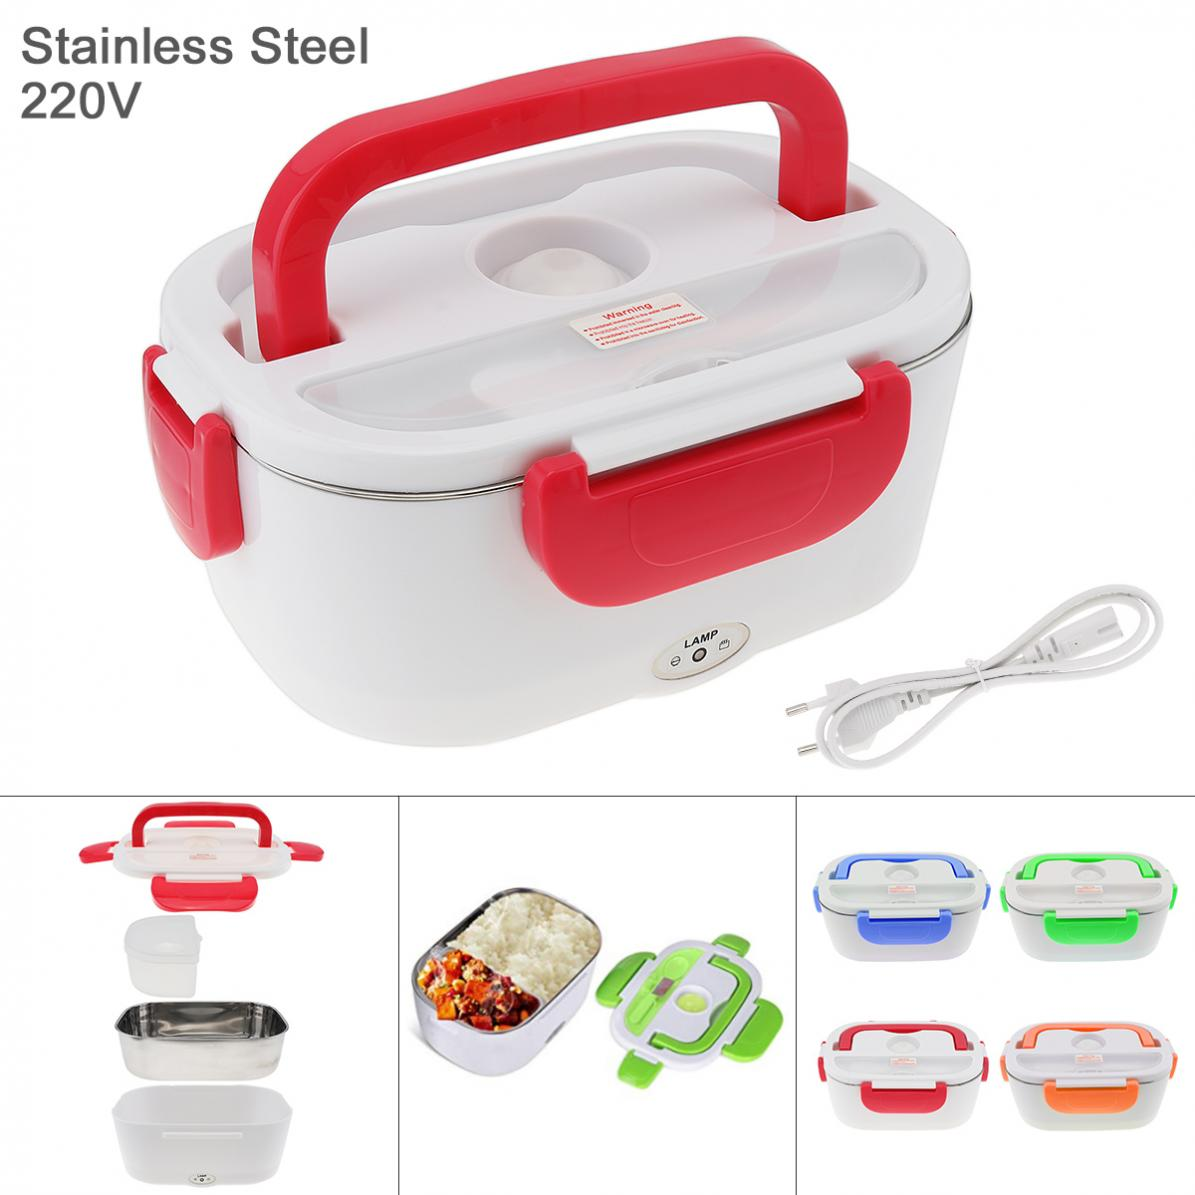 220V 1.5L Split-type Stainless Steel + ABS Portable Food Warmer Heating Keeping Electric Lunch Box With Spoon/EU Charging Line